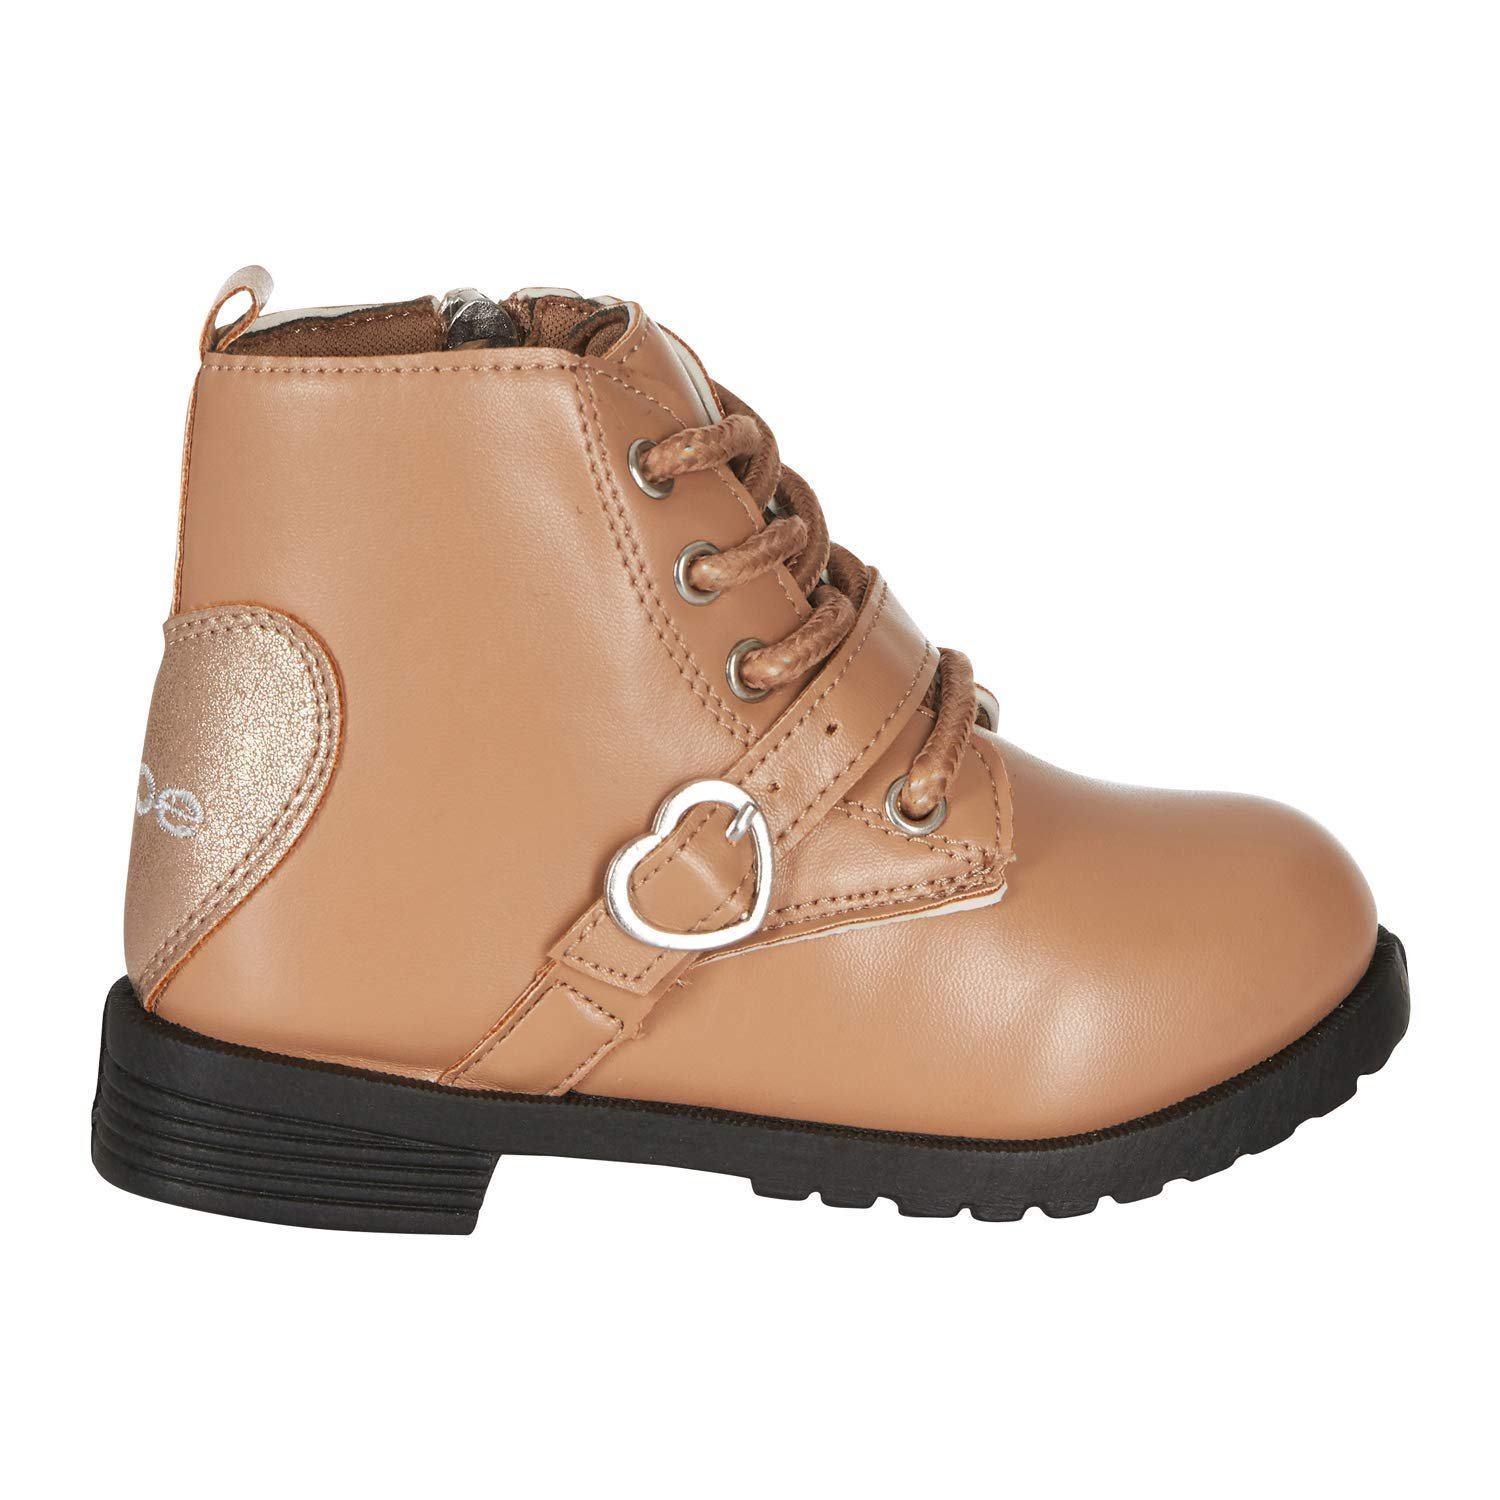 bebe Toddler Girls Lace up Combat Boots